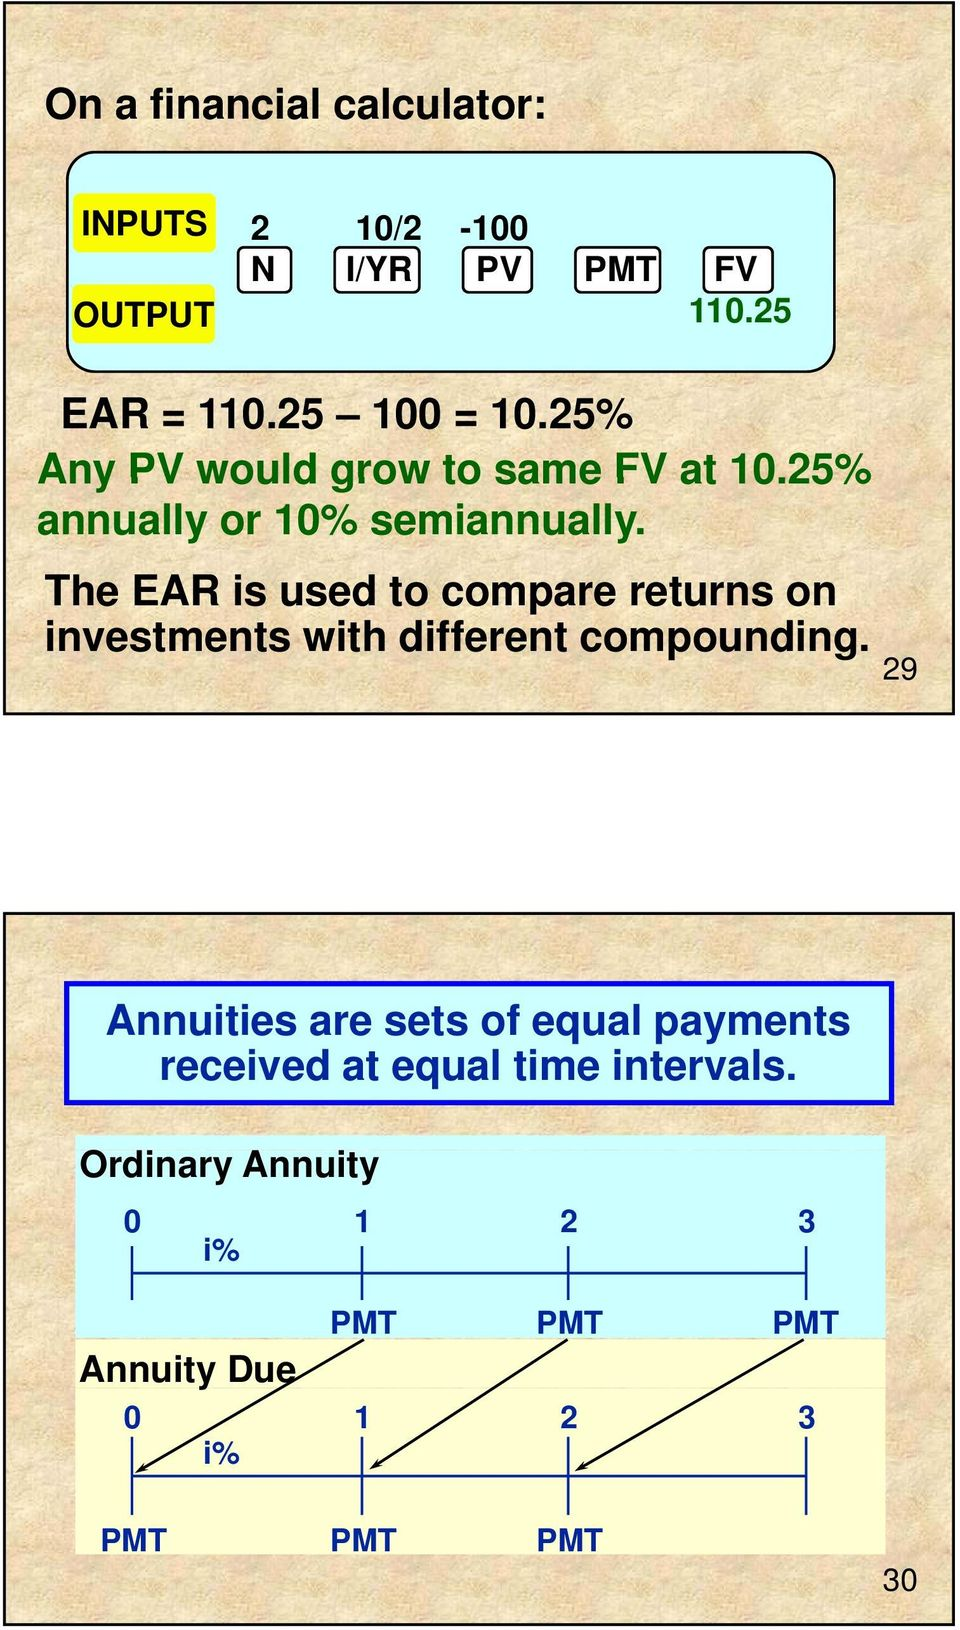 The EAR is used to compare returns on investments with different compounding.